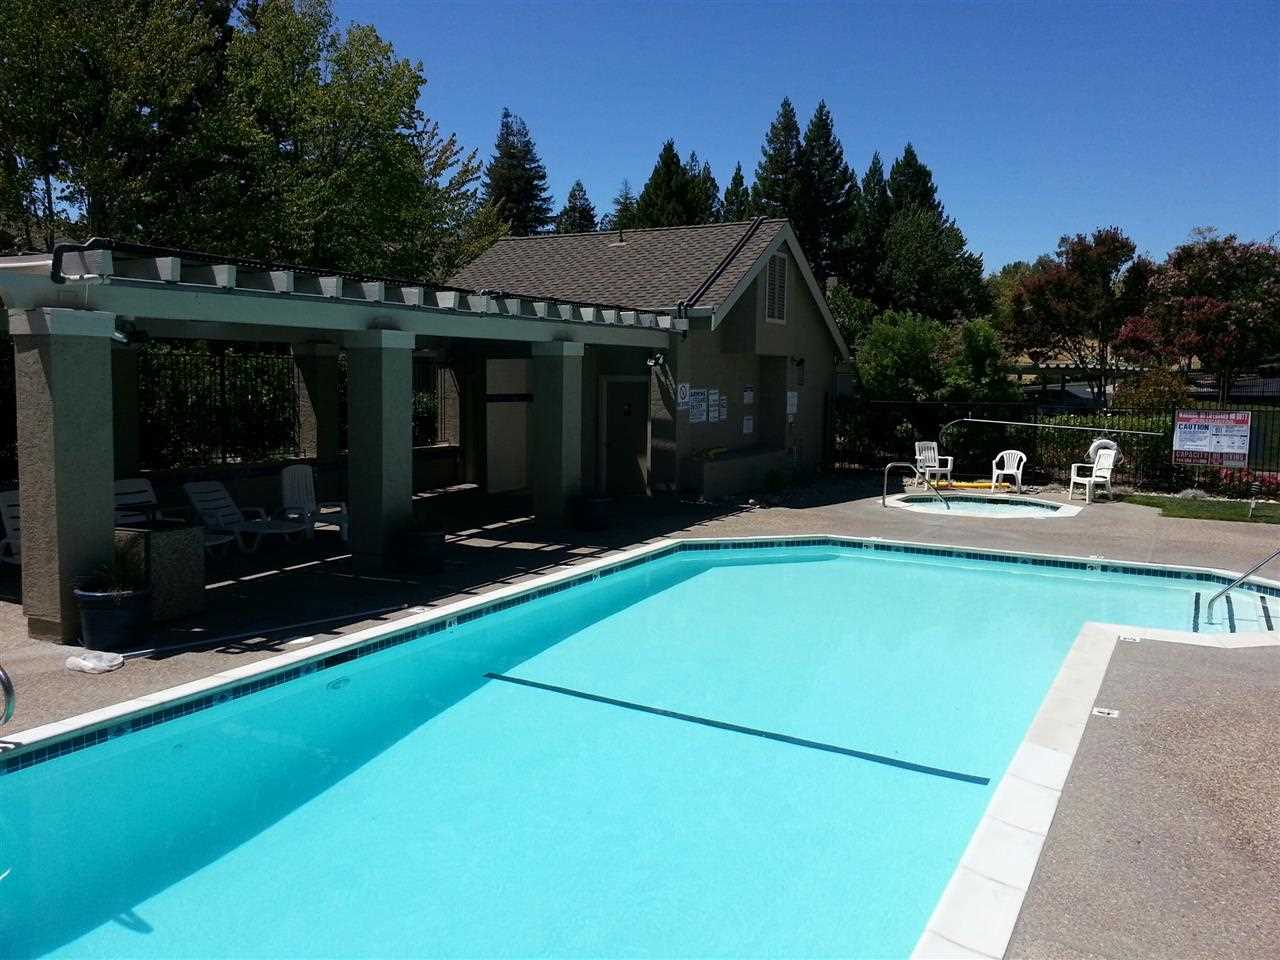 Additional photo for property listing at 3621 Crow Canyon Road  San Ramon, カリフォルニア 94582 アメリカ合衆国